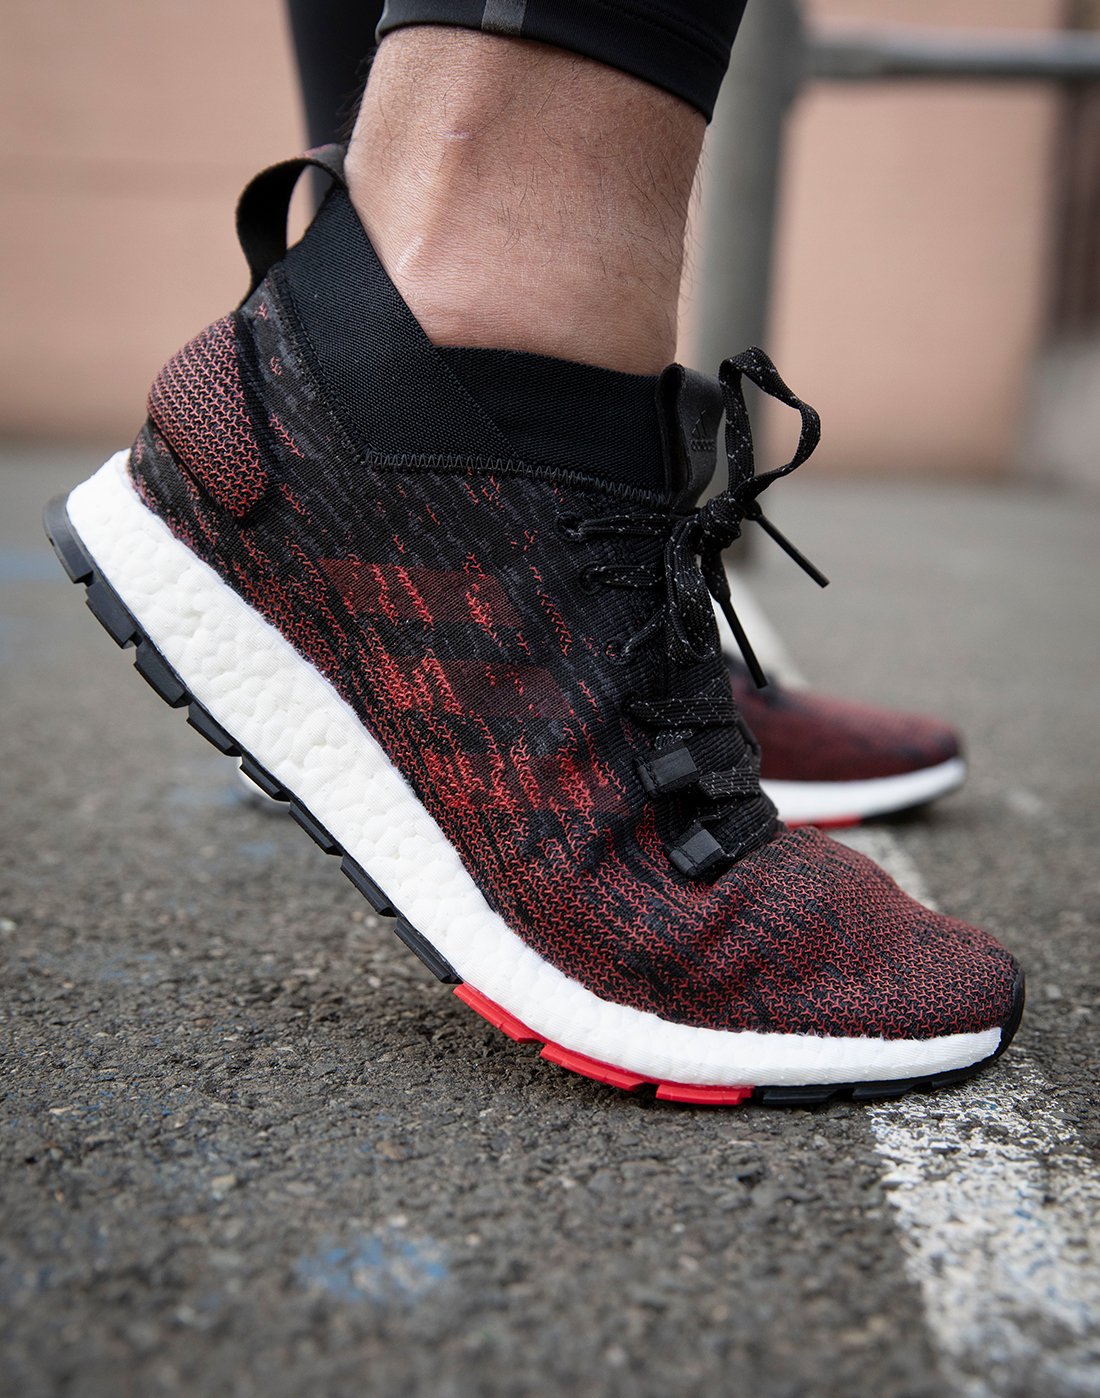 f8892a72658 Men s Black   Red adidas Pureboost Running Shoes